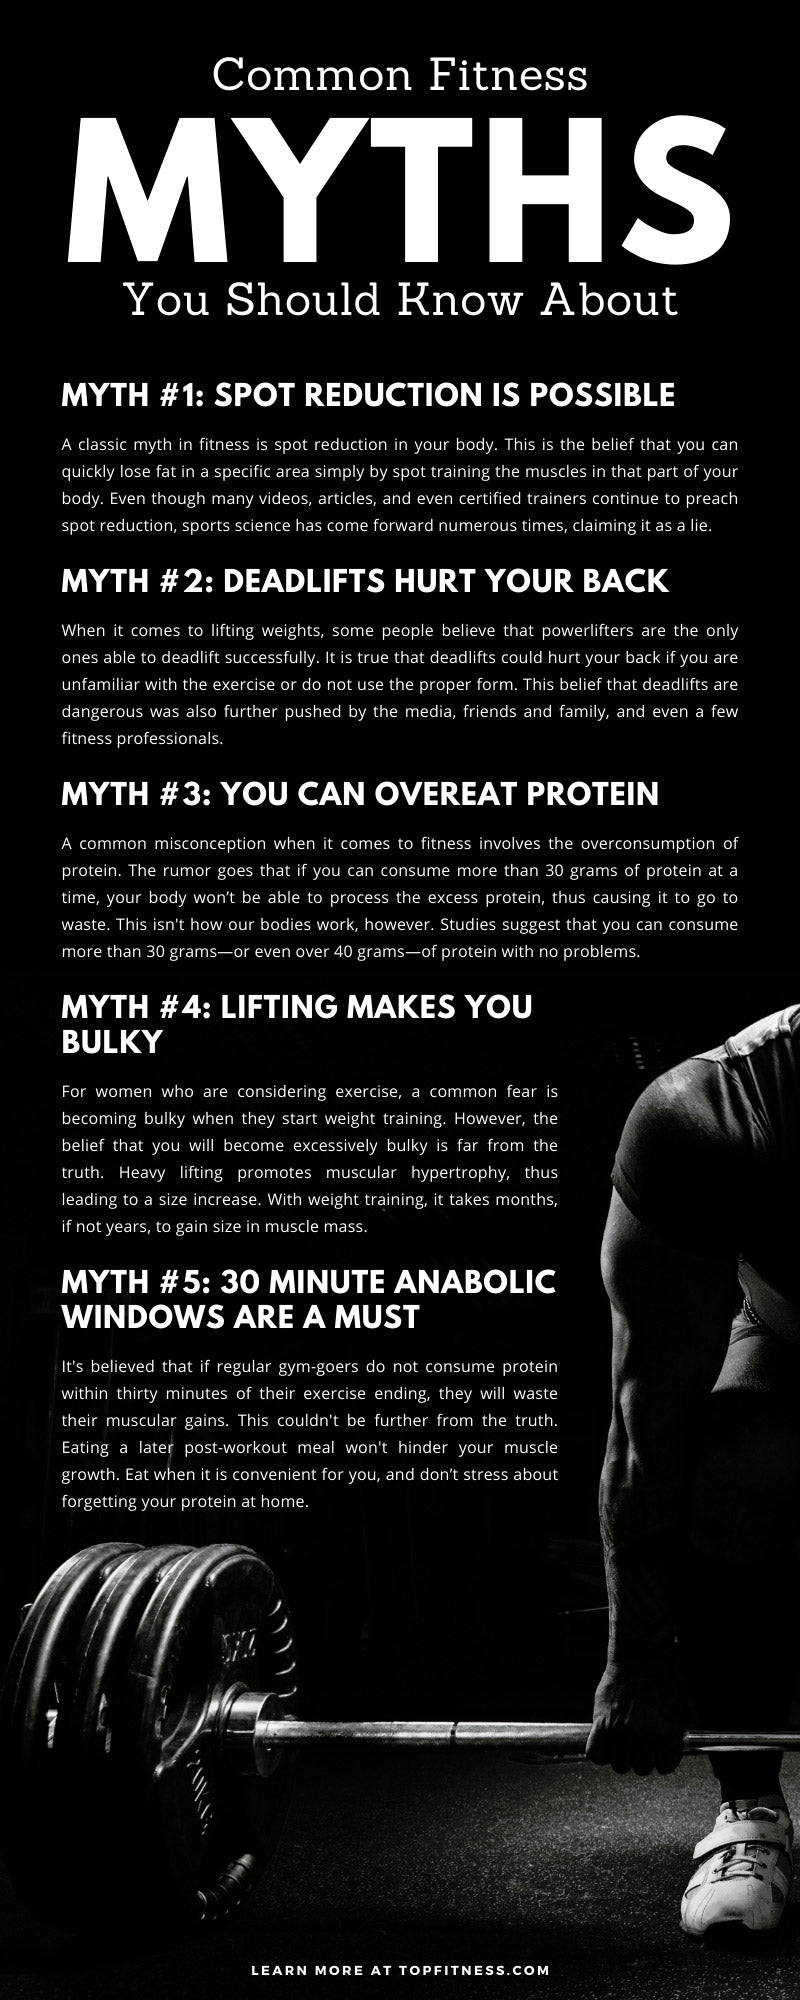 Common Fitness Myths You Should Know About